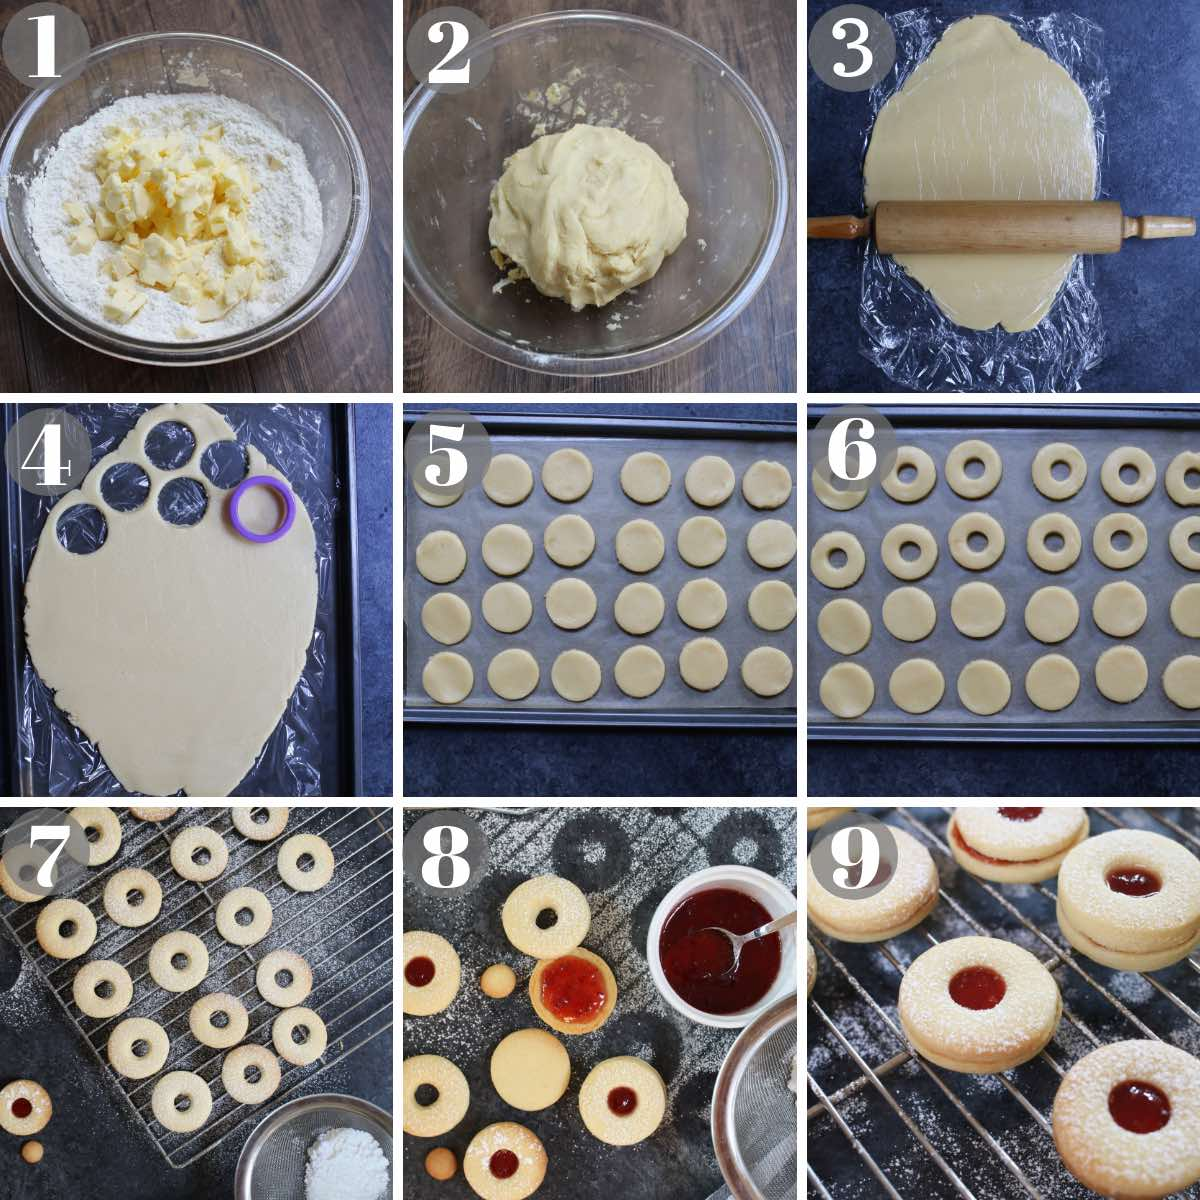 Step by step photo collage with 9 images showing how to make jammie dodger: from making the dough to assemble the cookie sandwiches.